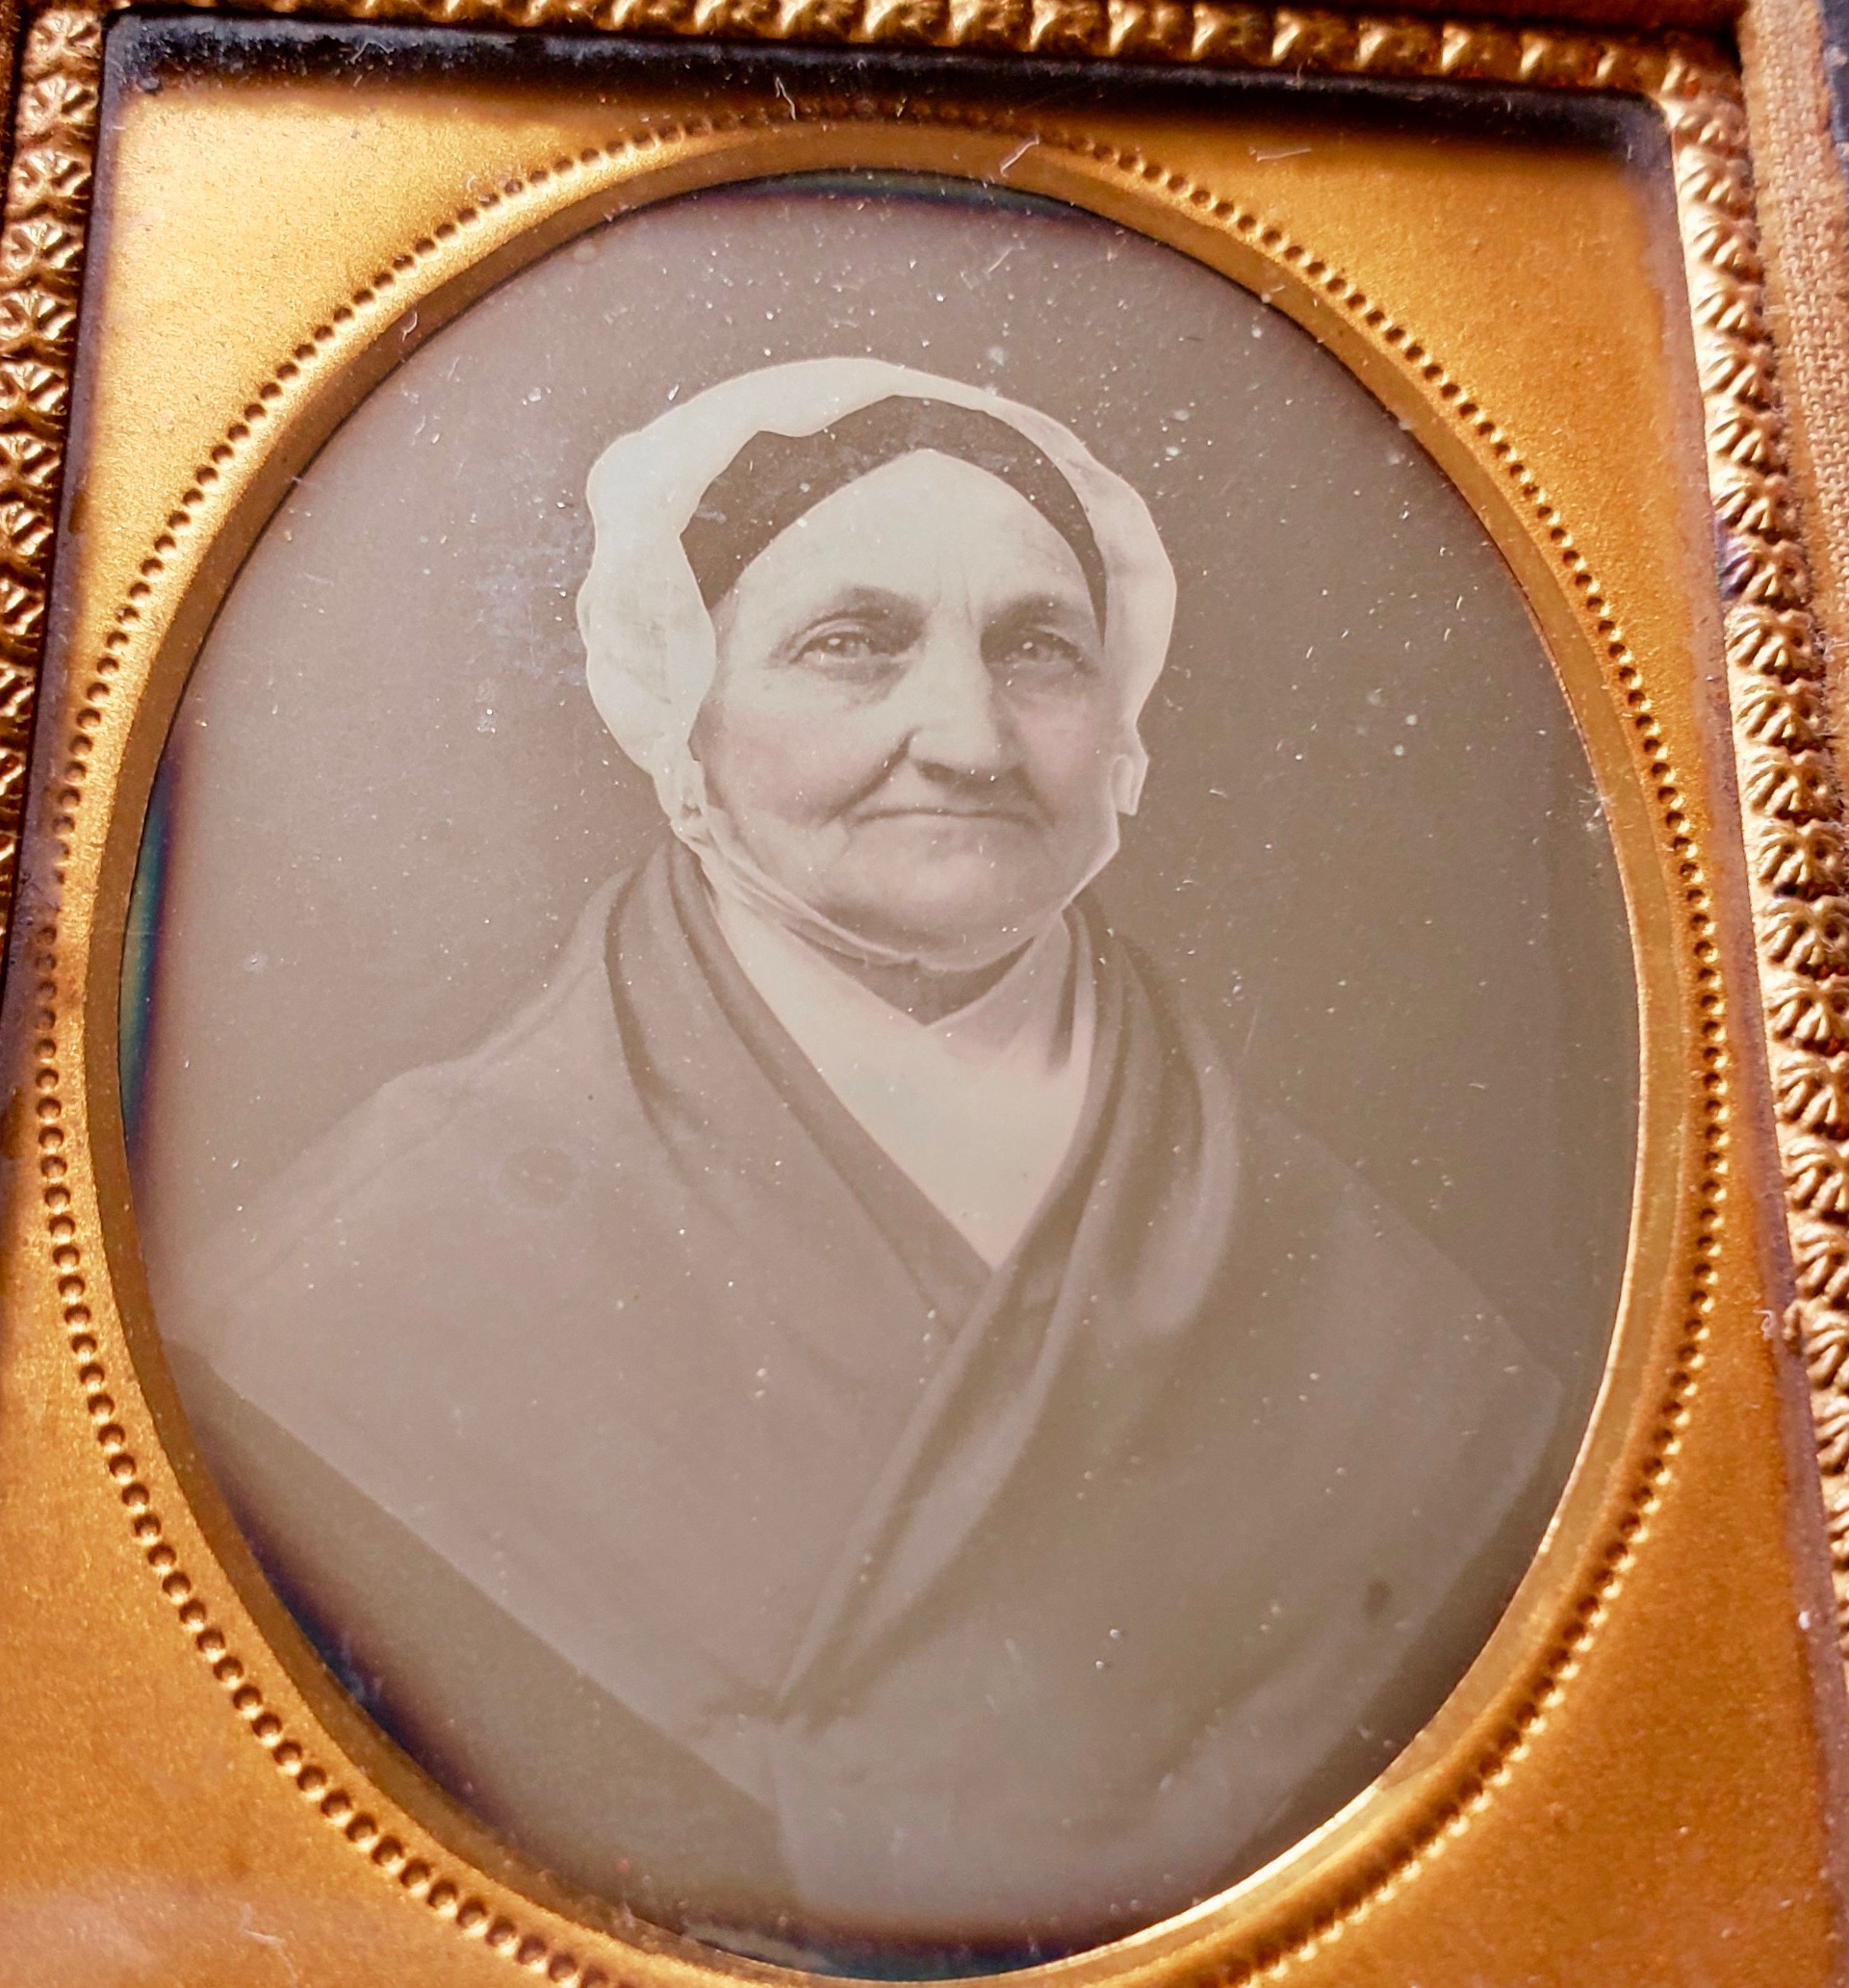 Possibly Hannah Brown Taylor wife of Yardley Taylor of Loudoun County, Virginia